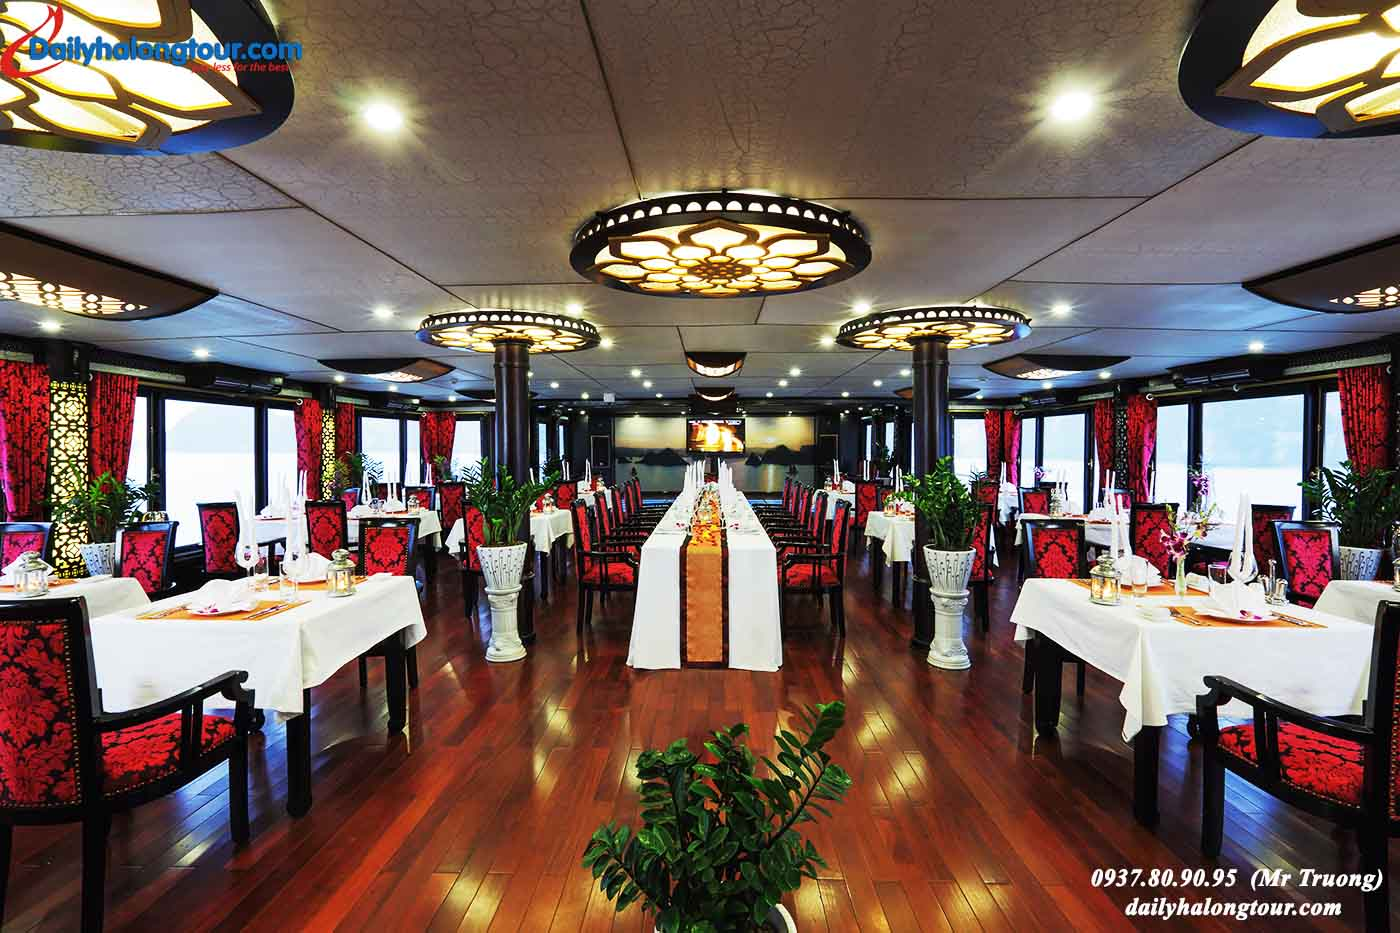 Starlight Cruise 2 days/1 night